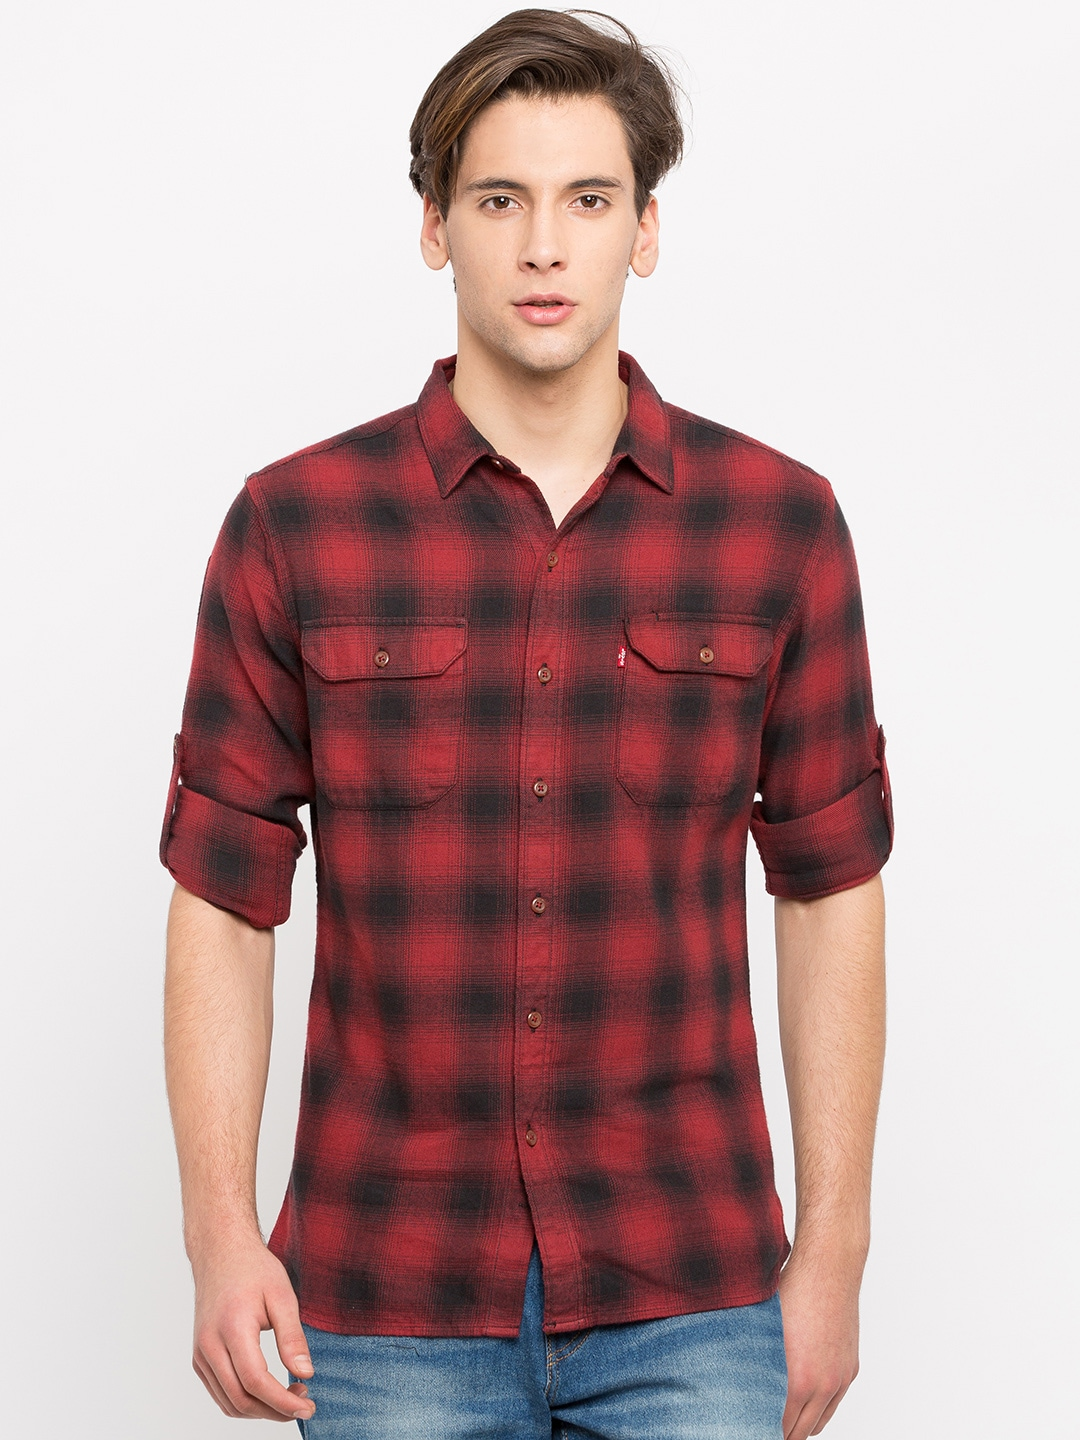 India Red Buy Levis In Shirts Online 0wOX8Pnk